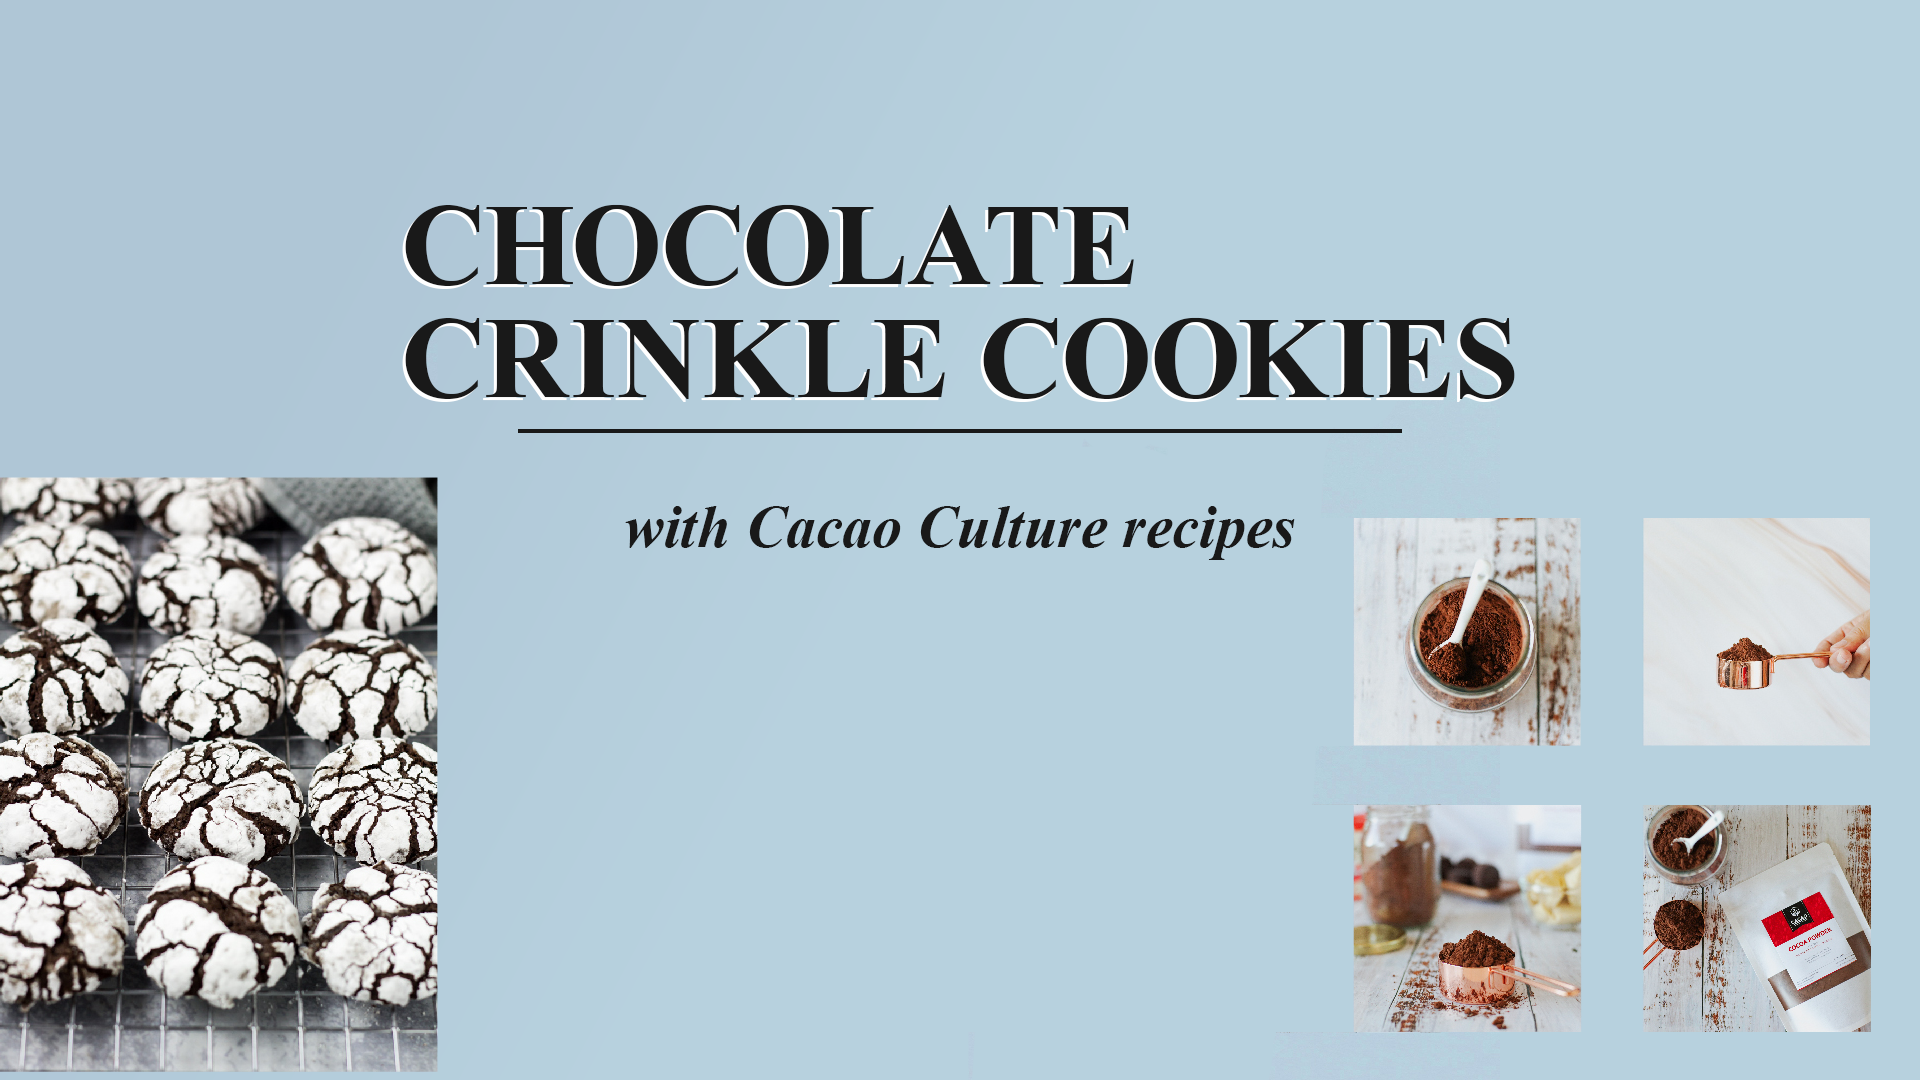 Chocolate Crinkle Cookies | Cacao Culture Recipes